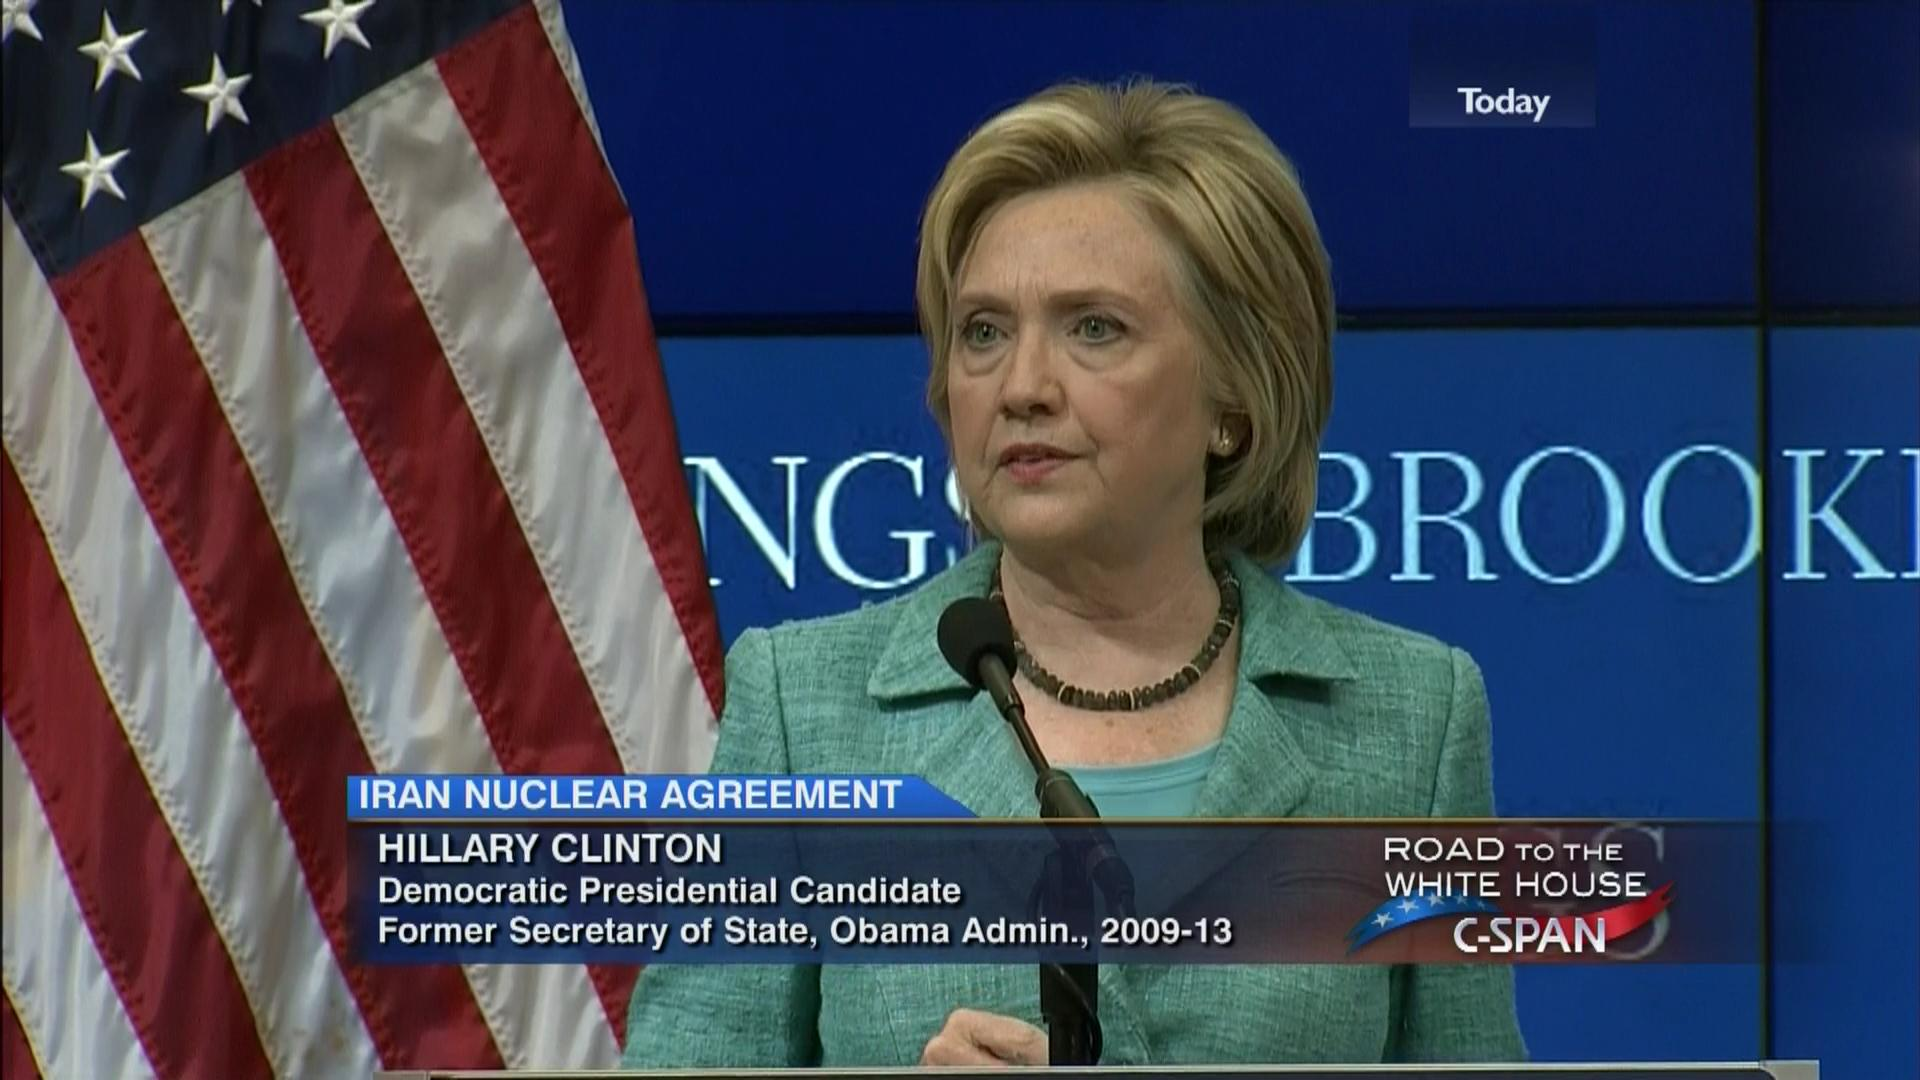 Model applied to british media coverage of iran nuclear deal - Presidential Candidate Hillary Clinton On Iran Nuclear Agreement